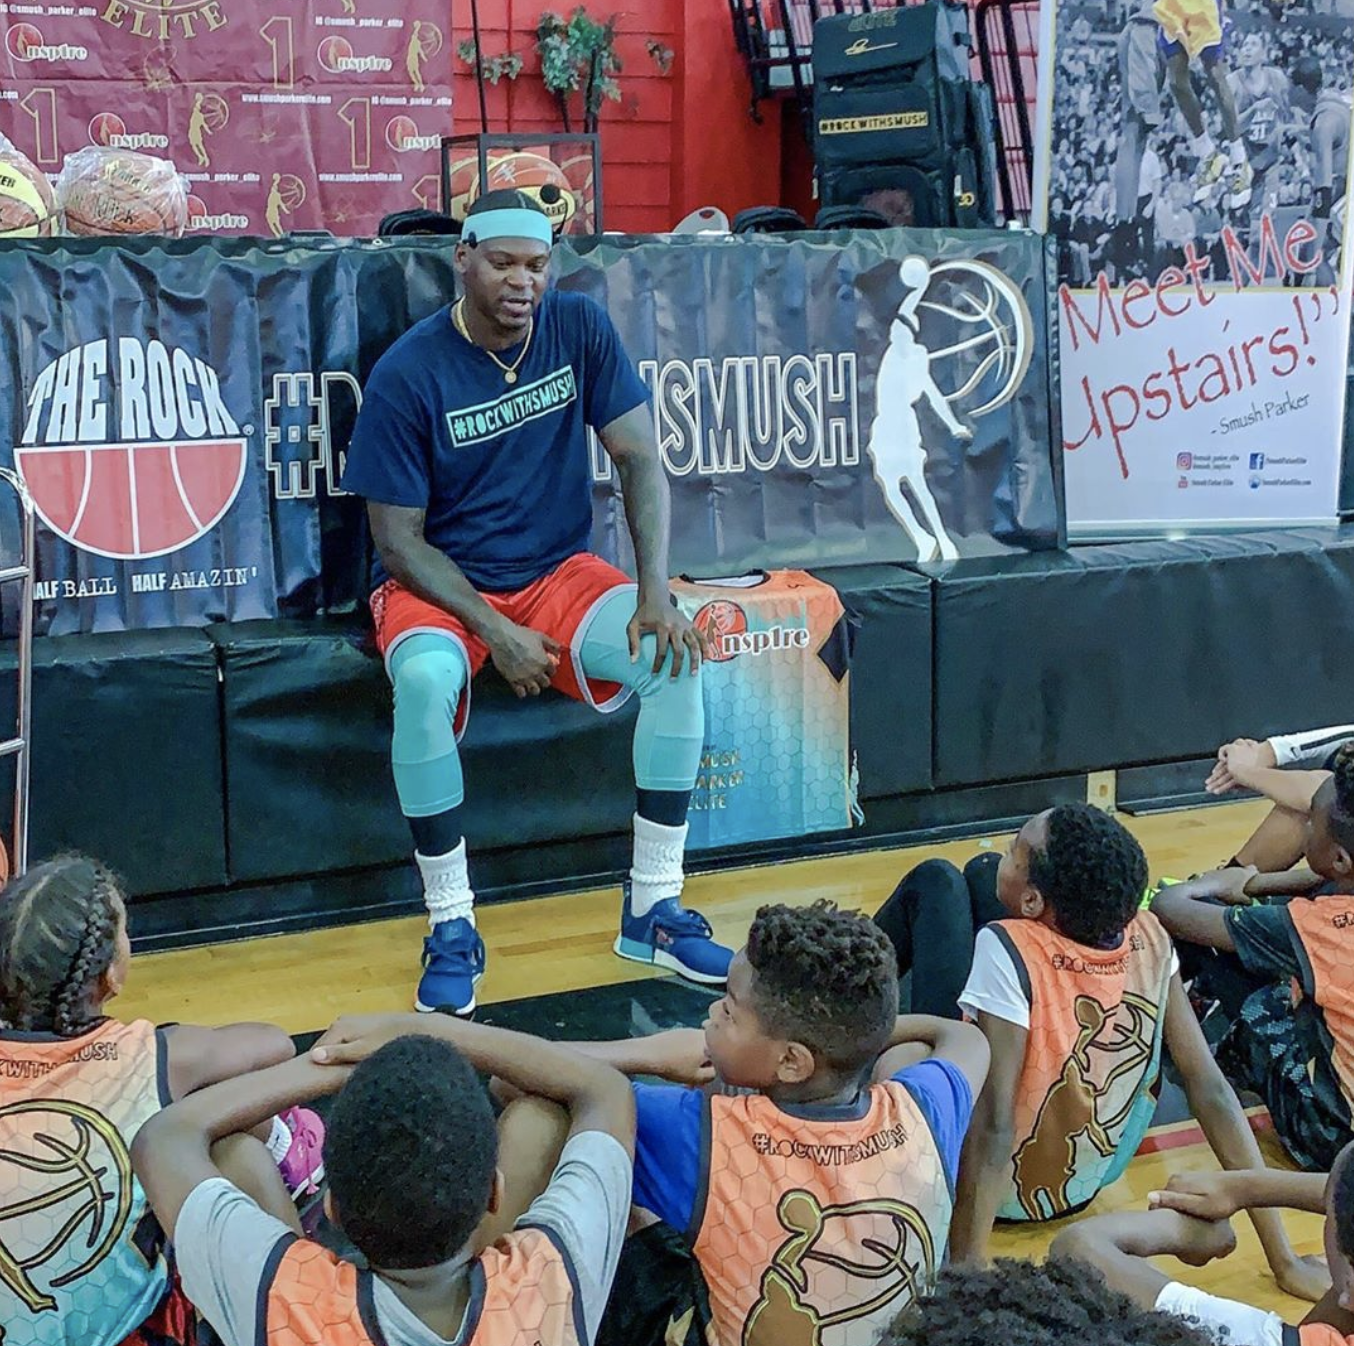 We've Got Your Back: In a recent free clinic in Fort Lauderdale, 16-year pro Smush Parker shared his inspirational story from Queens to the NBA and the importance of inspiring young basketball players from all around the United States.